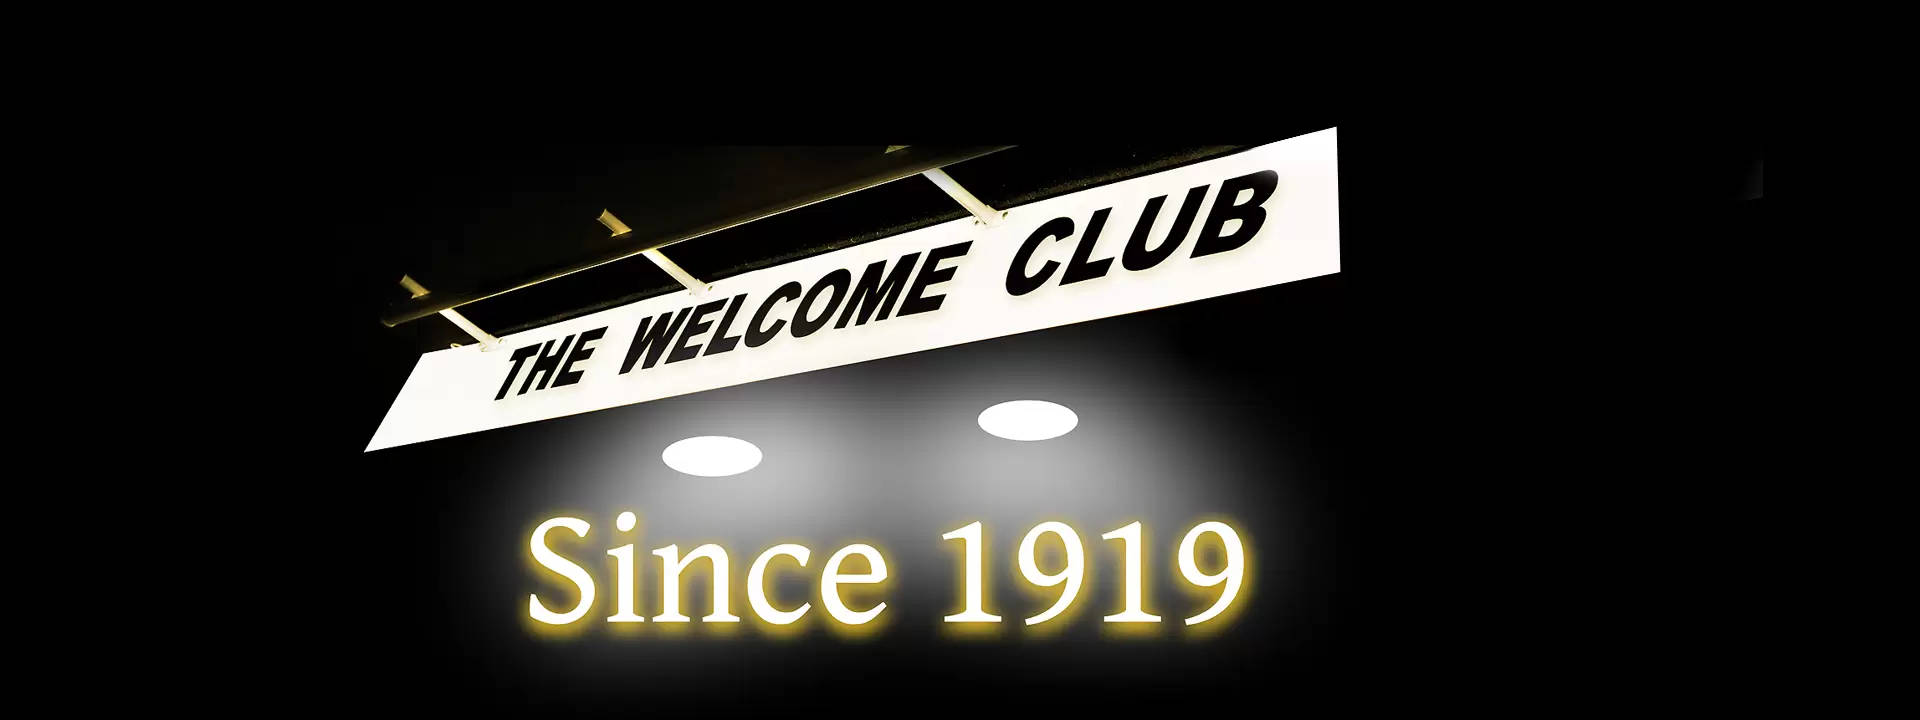 The Welcome Club Front 1919